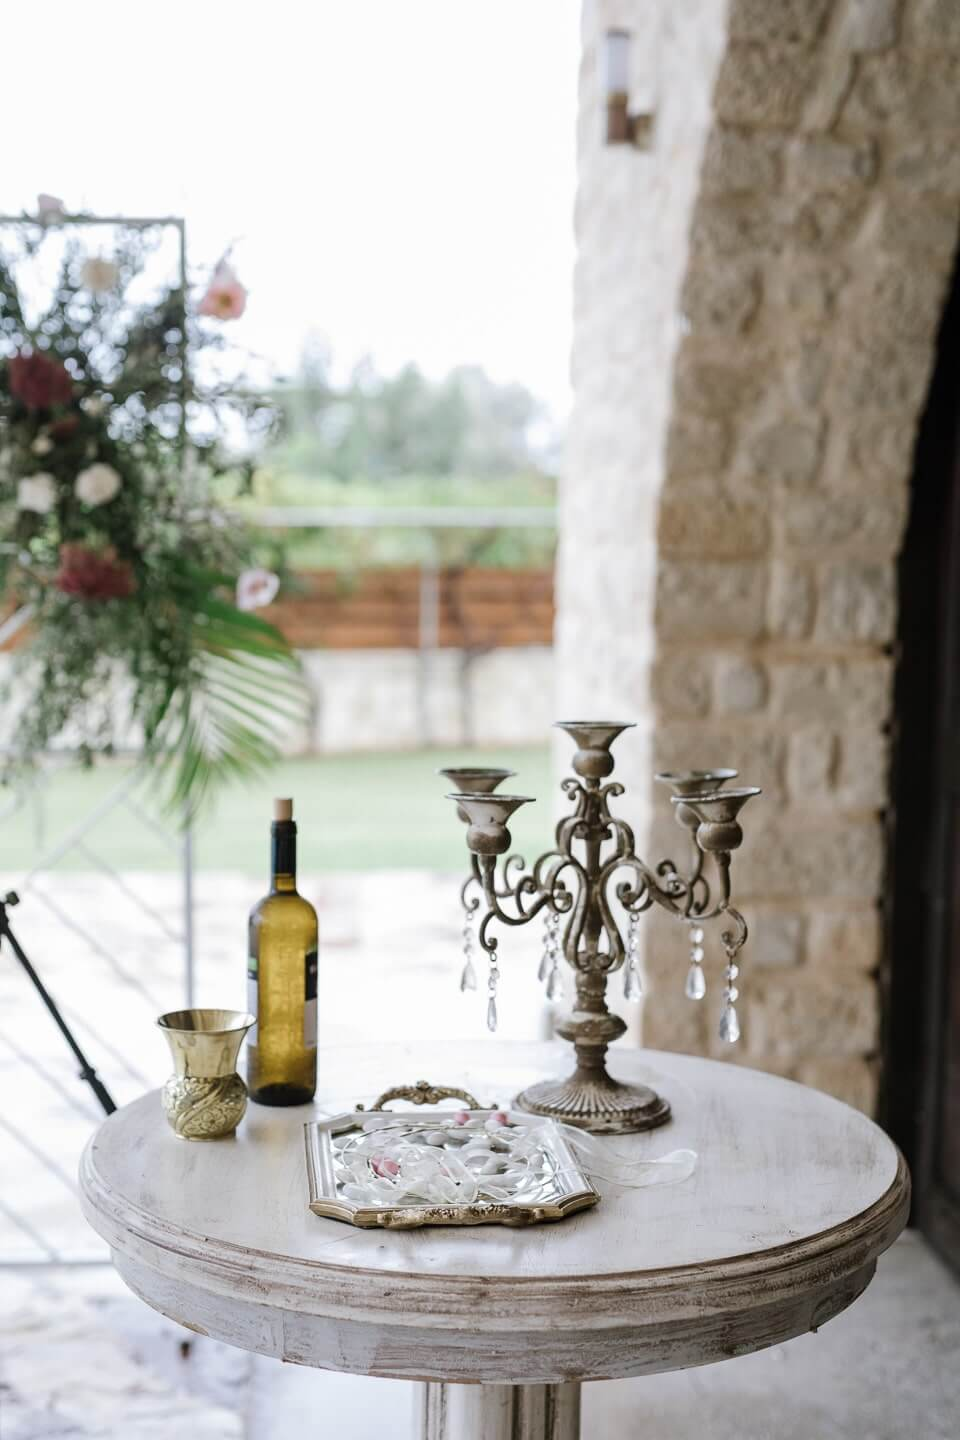 Jewish Greek Wedding Irini Koronaki Professional Wedding Photographer Photography Crete Chania Greece